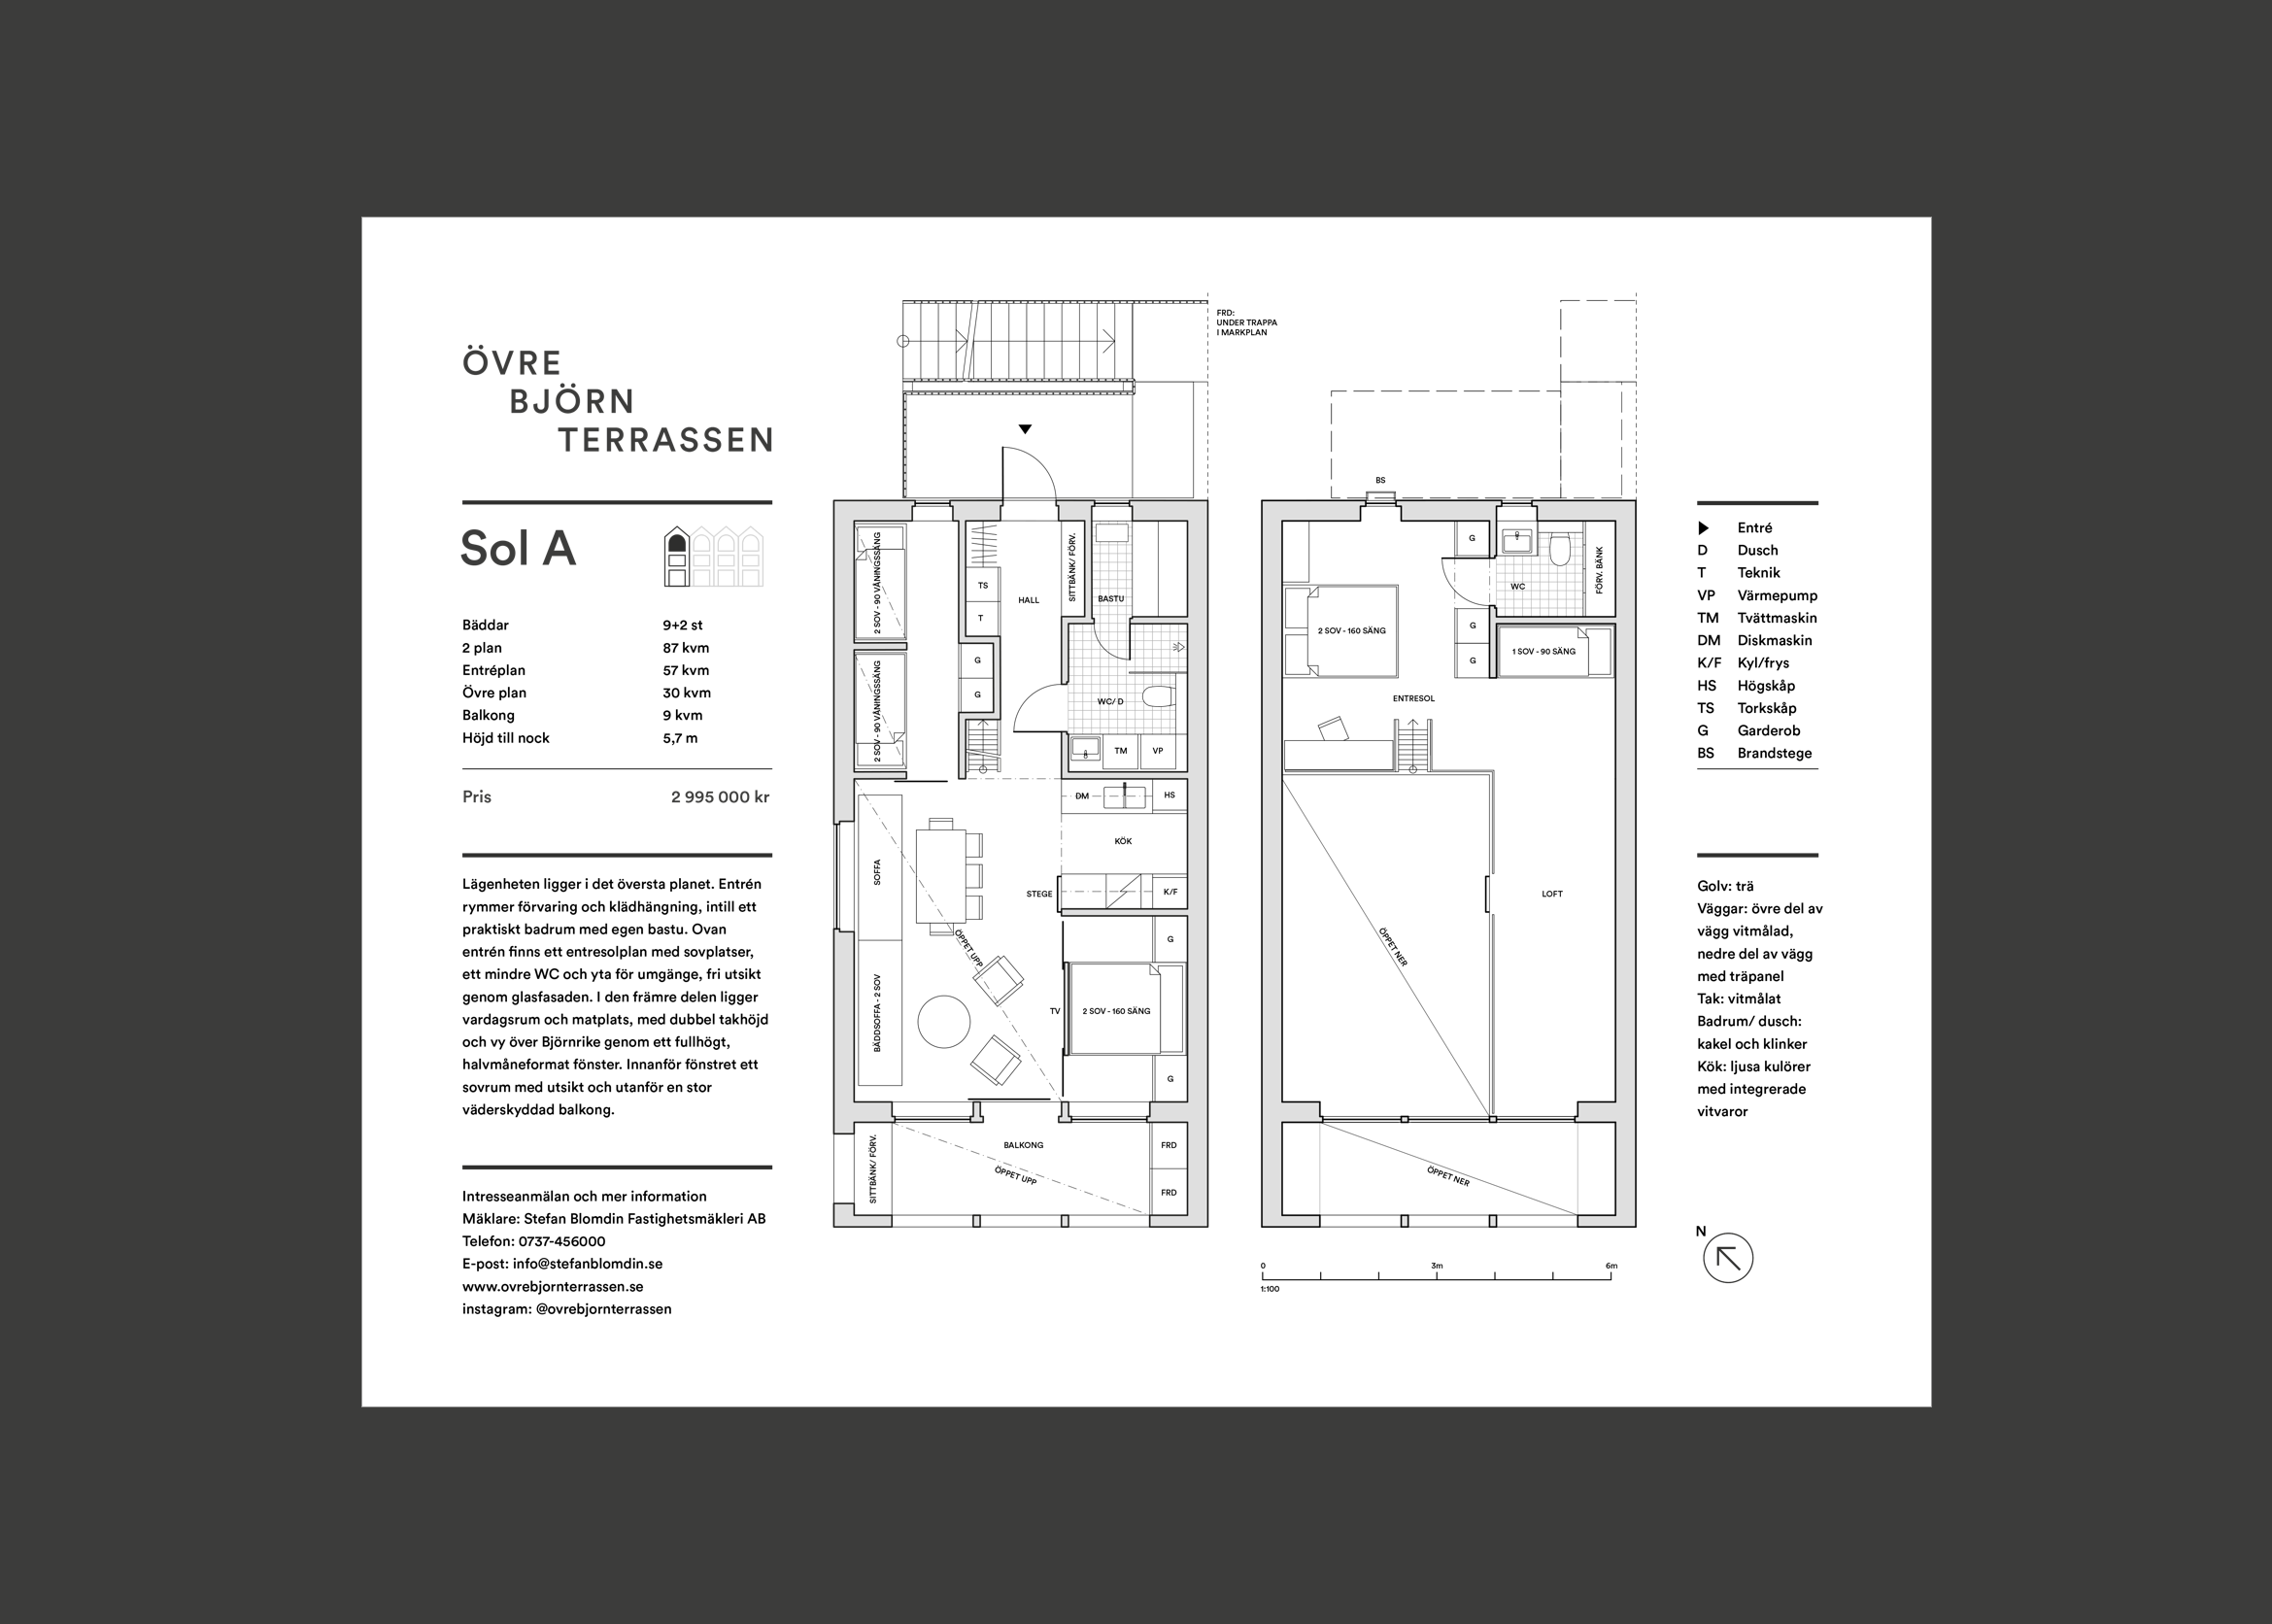 Digital design for Fahlander Architects and Övre Björnterrassen. Material from the process showing blueprint and typography for apartments.